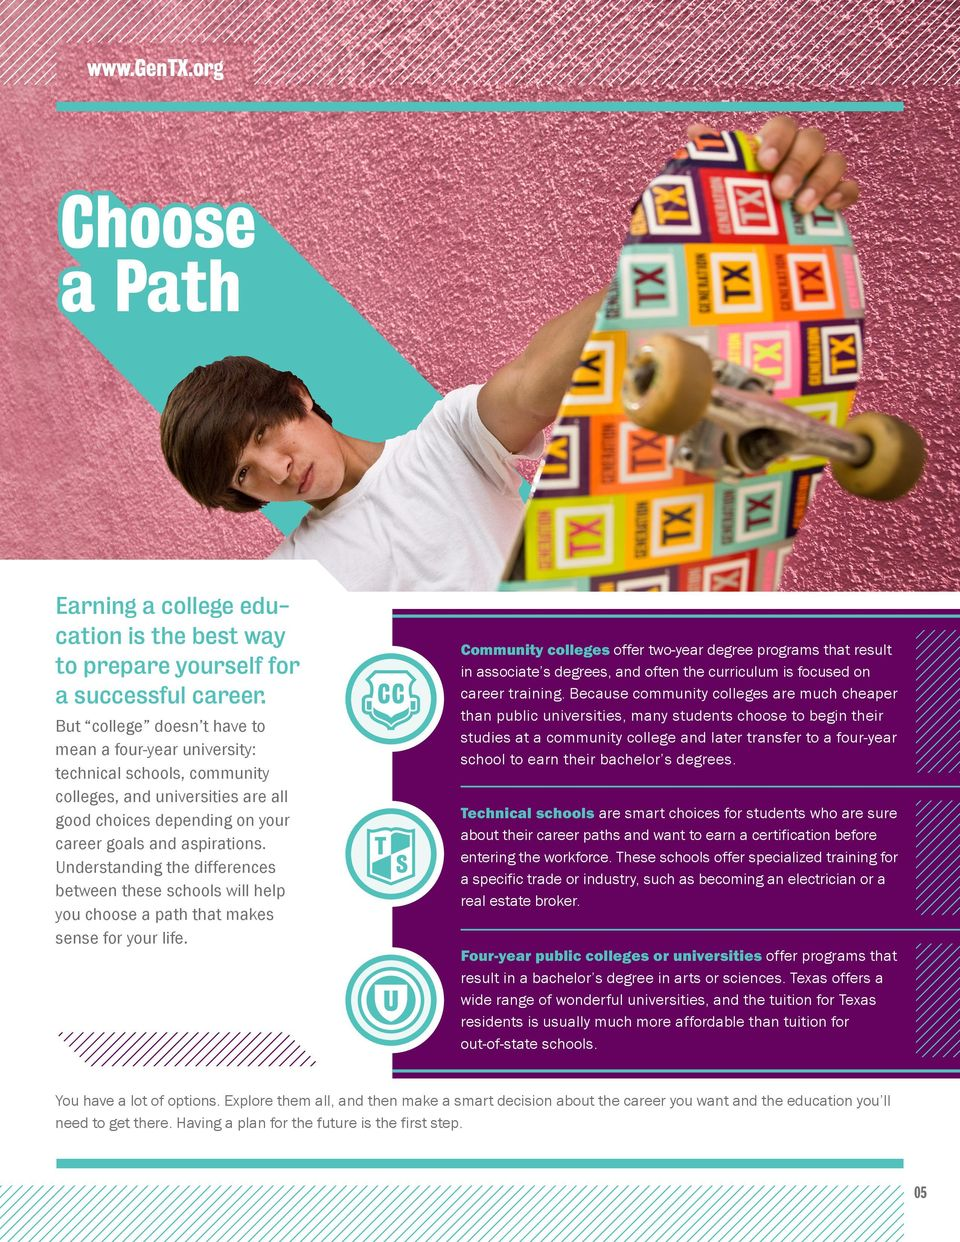 Understanding the differences between these schools will help you choose a path that makes sense for your life.